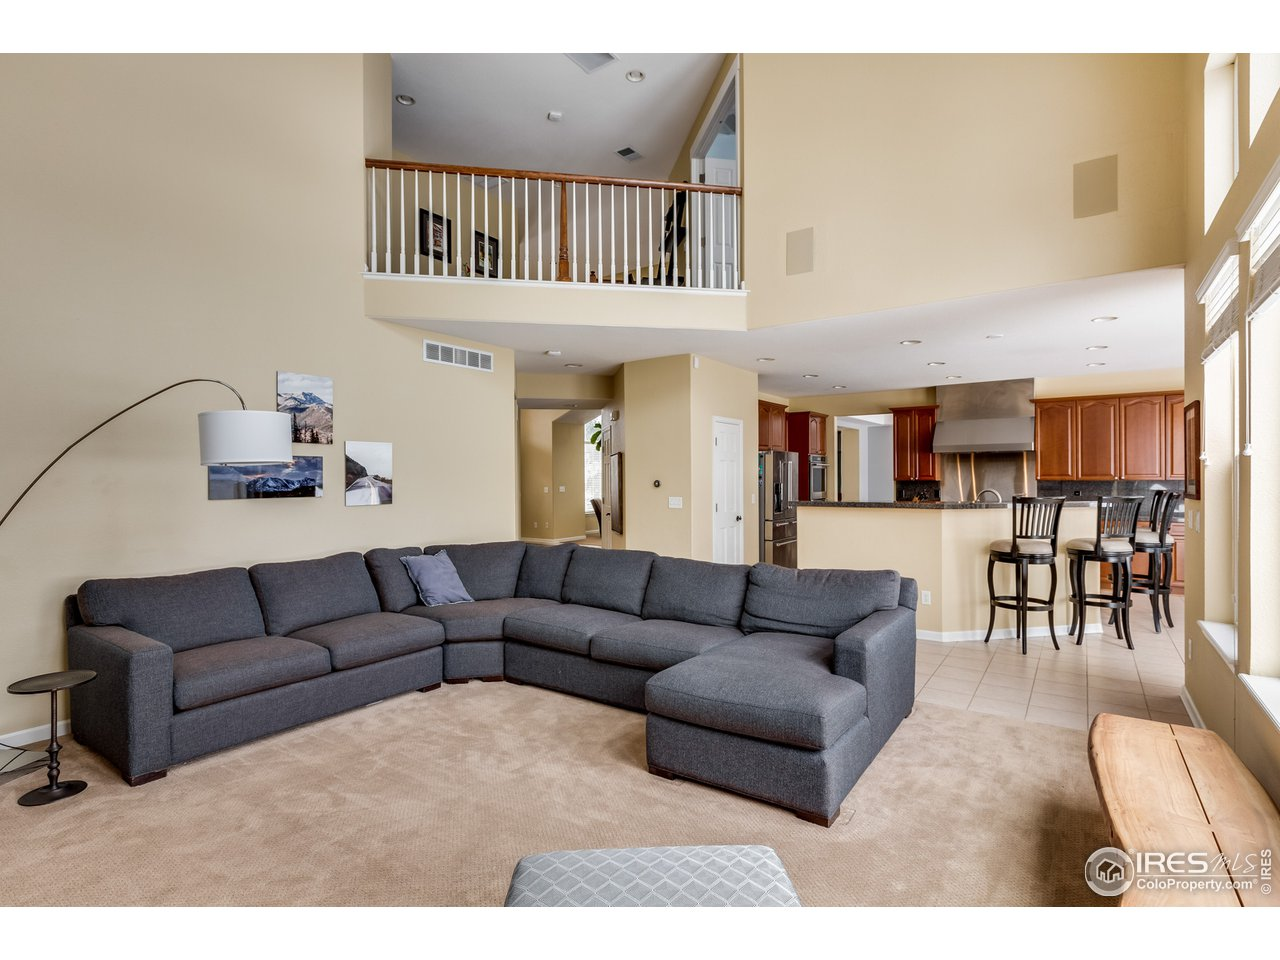 Tall ceilings in family room